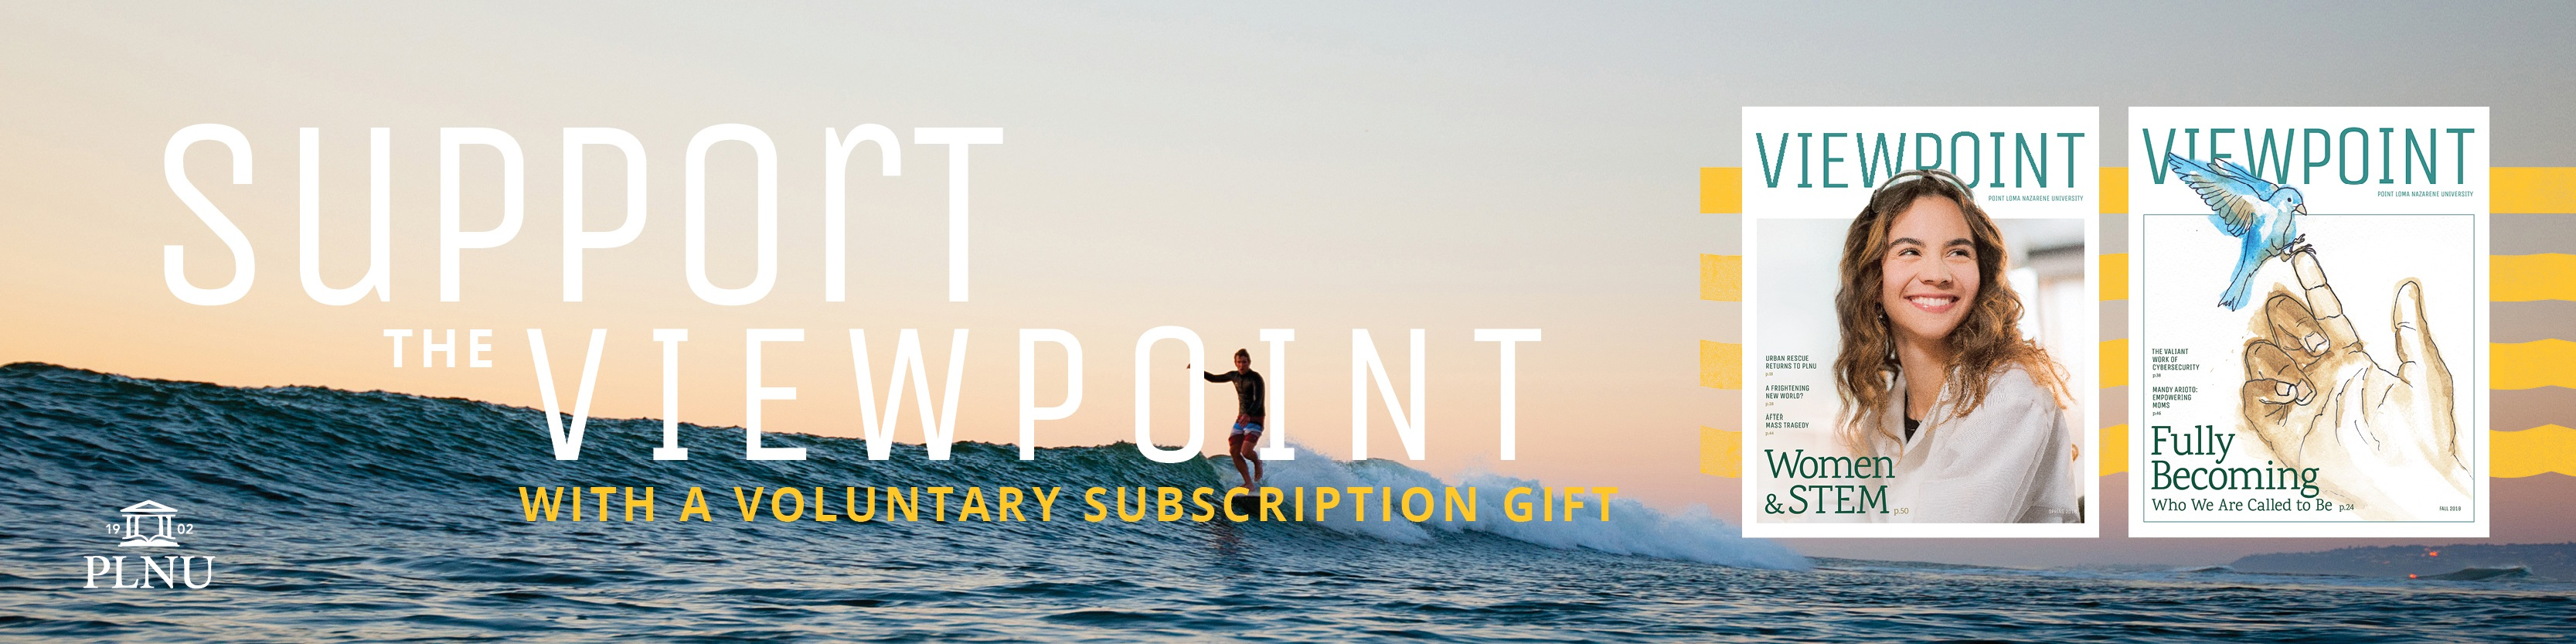 Viewpoint Voluntary Subscription